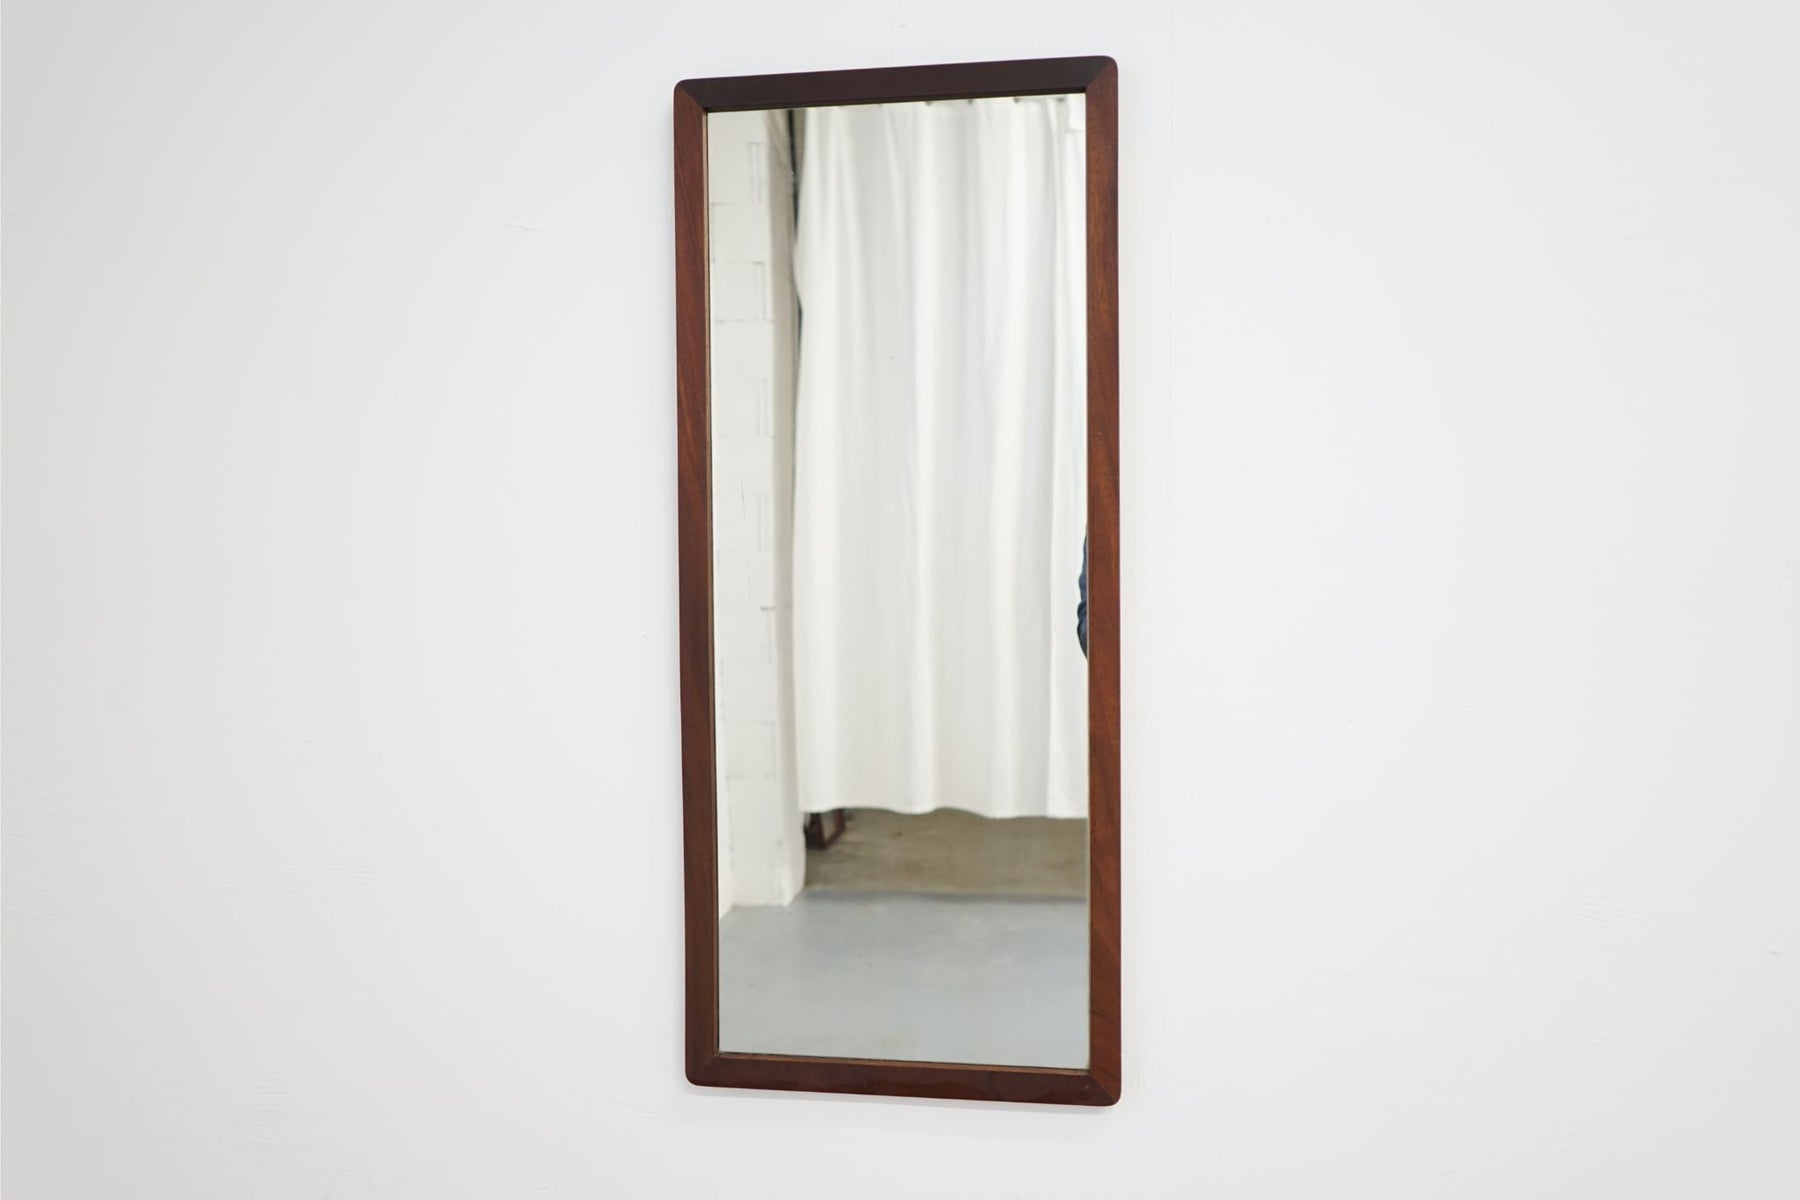 A Mid Century Mirror Made With Teak - (314-127.3)